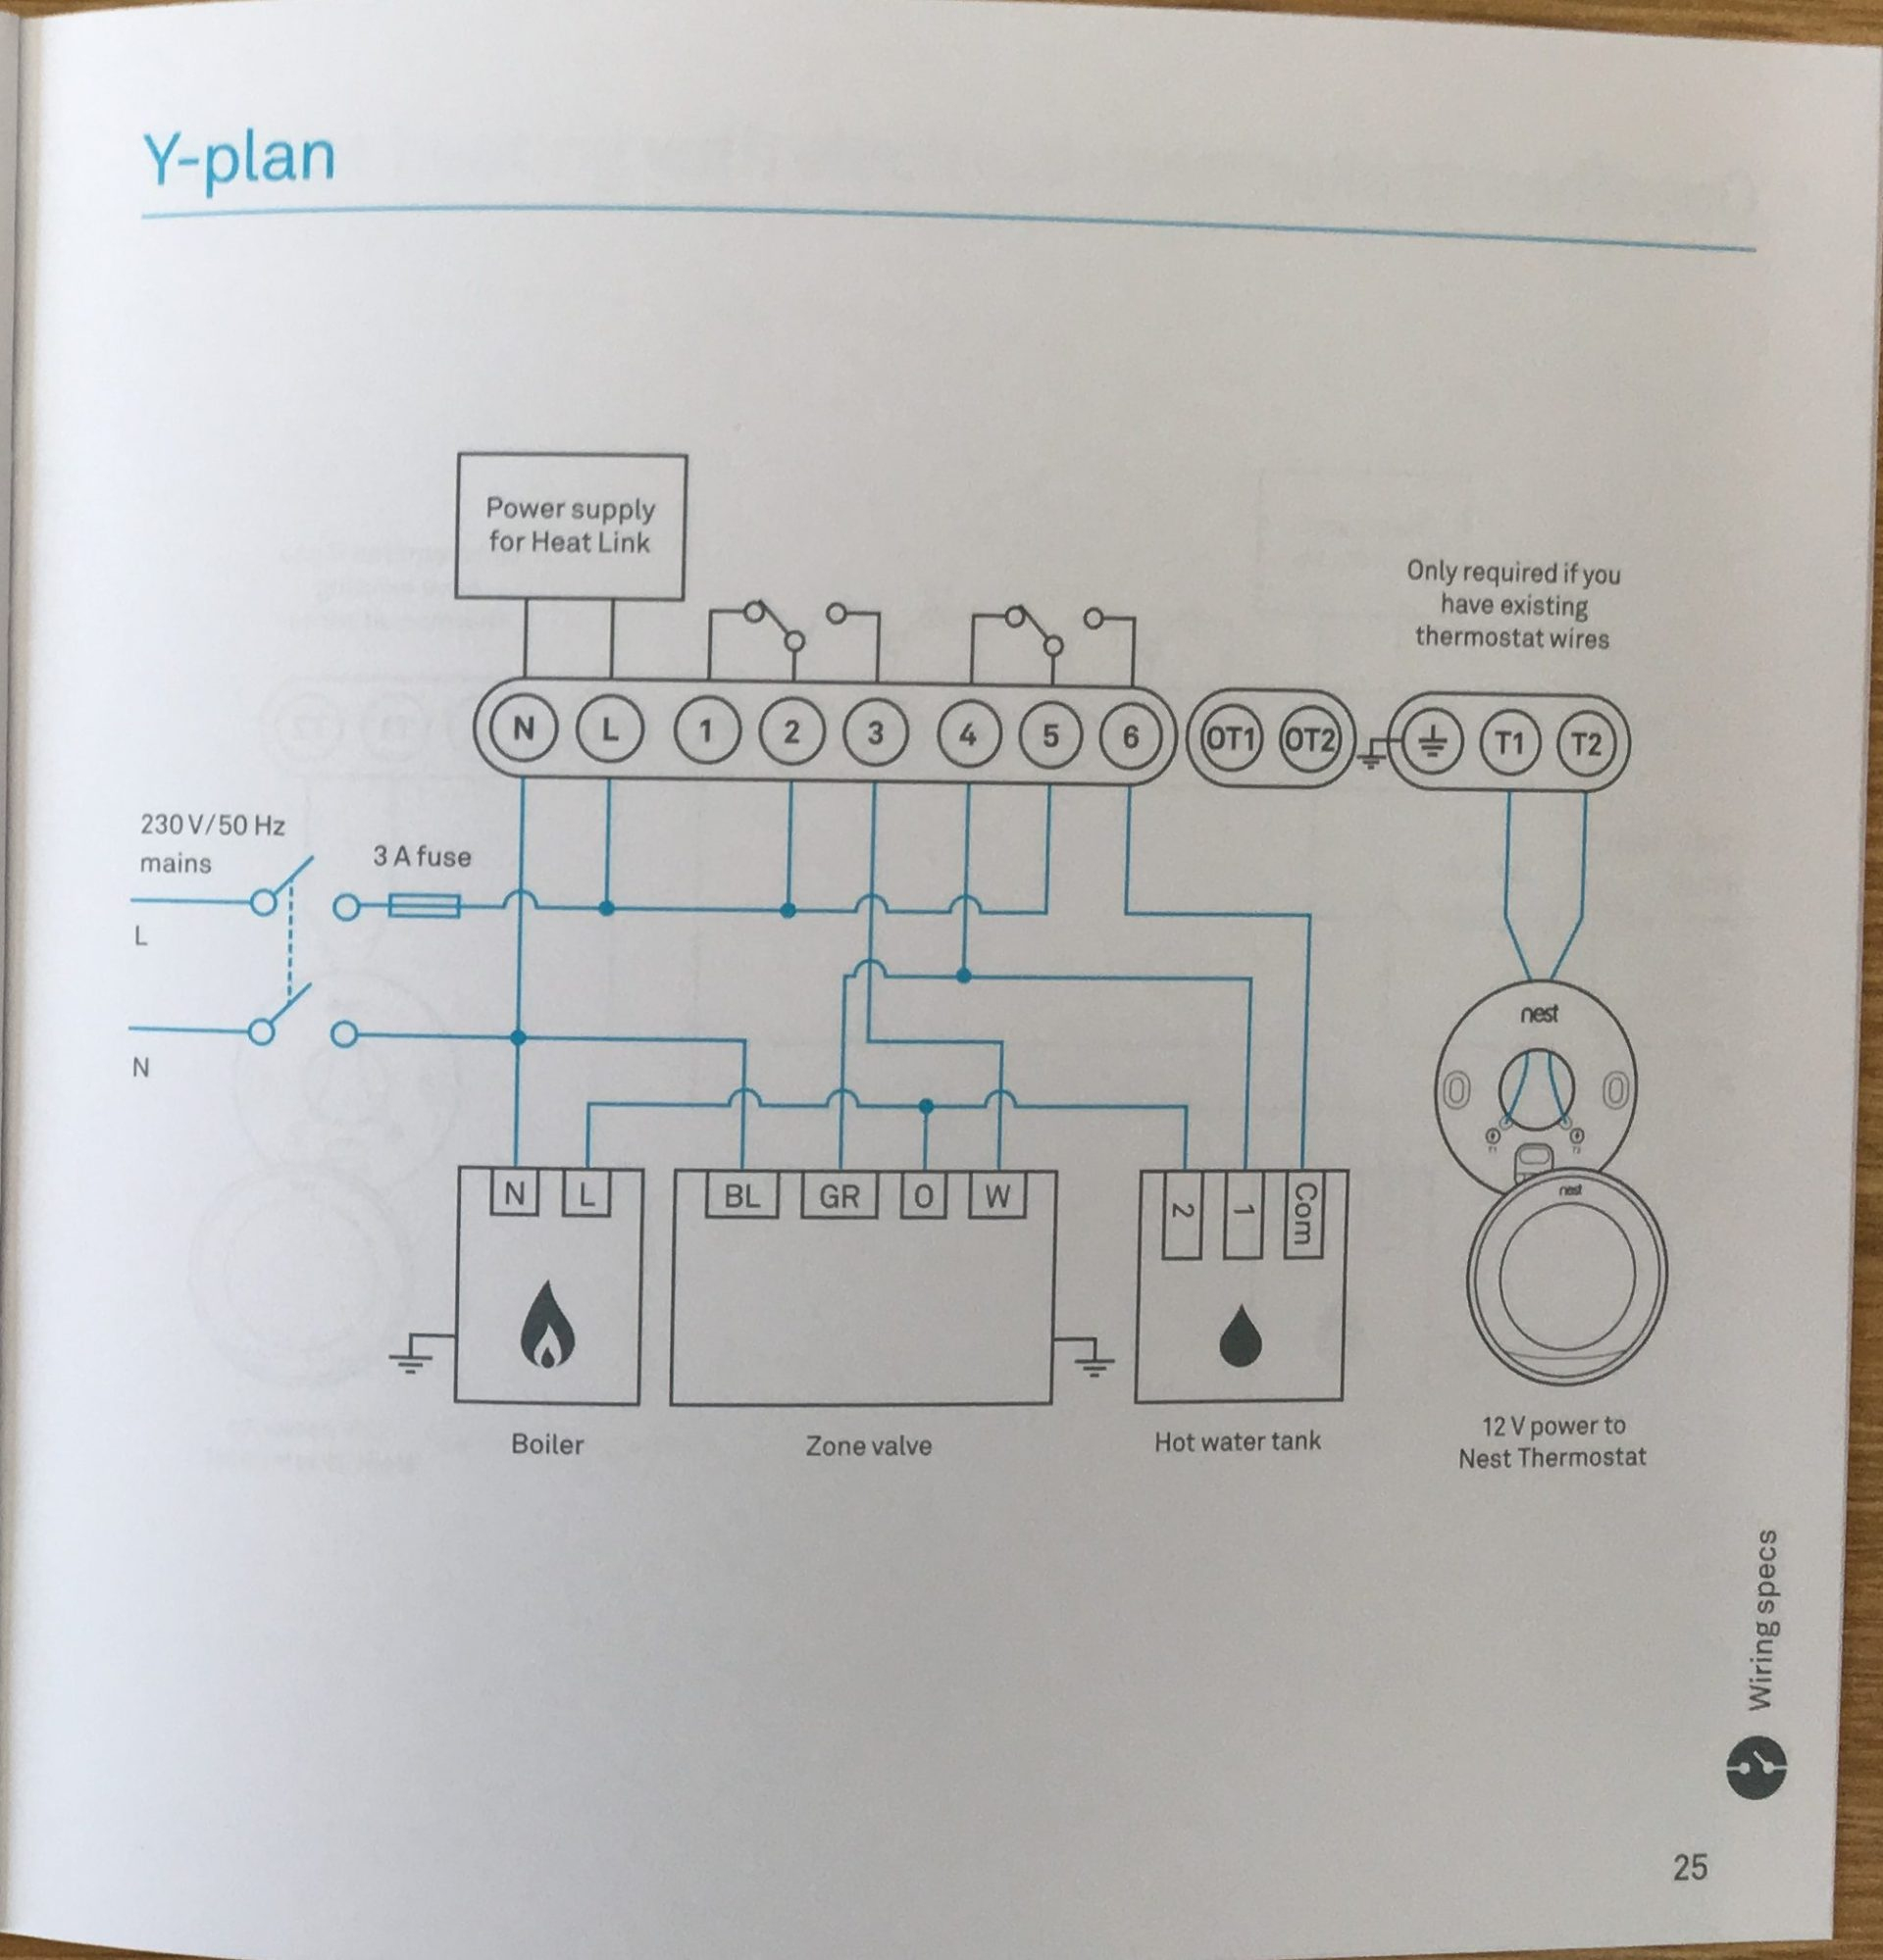 How To Install The Nest Learning Thermostat (3Rd Gen) In A Y-Plan - Nest Room Thermostat Wiring Diagram